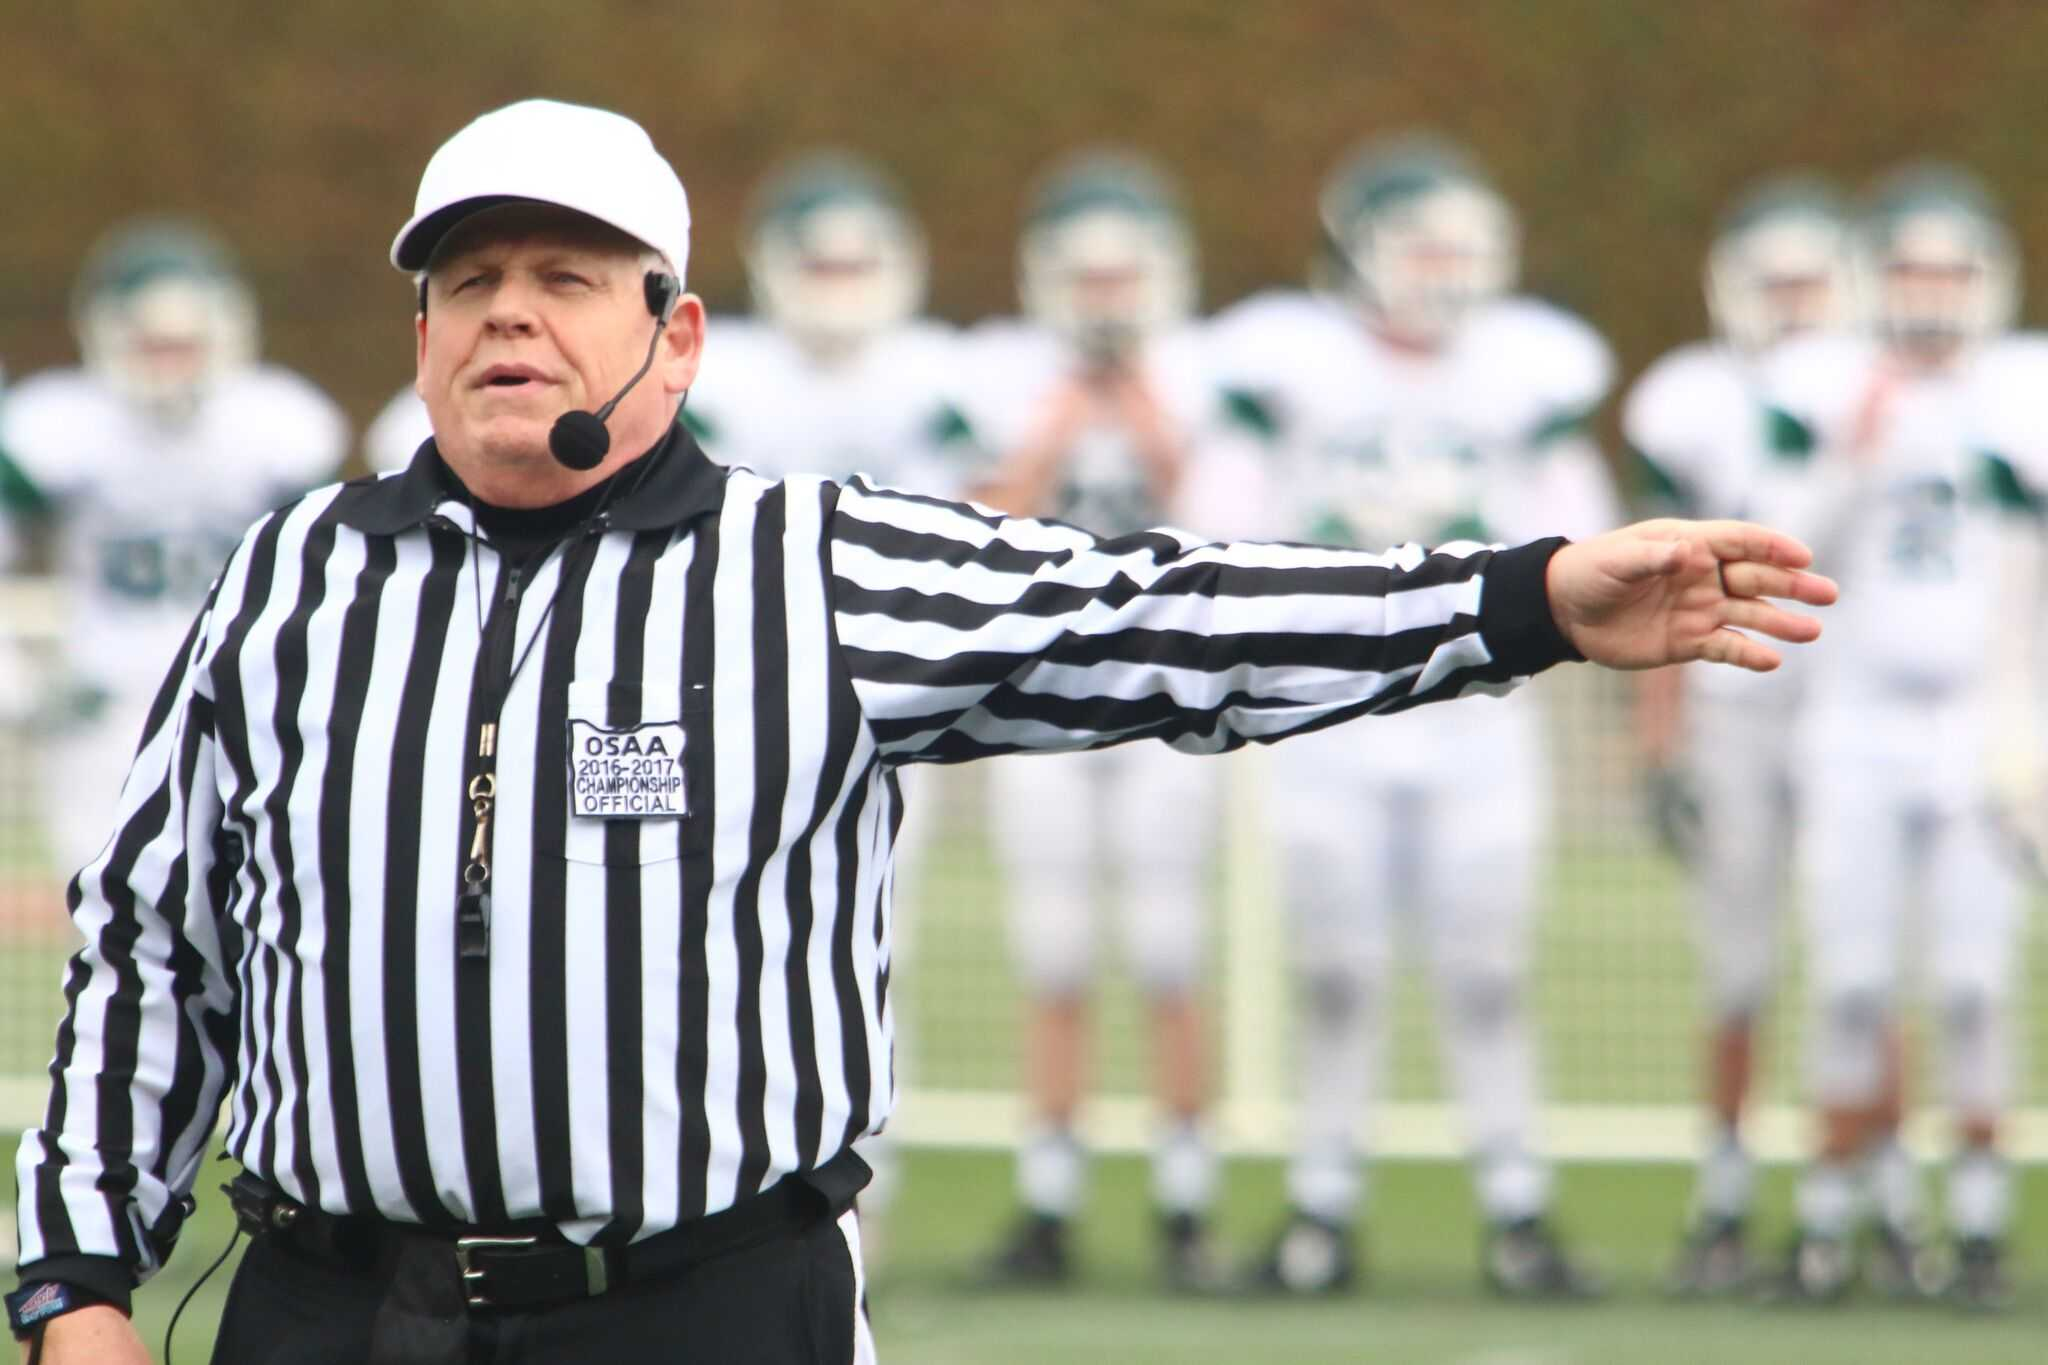 Oregon high school football had 650 officials last season, down 21.3 percent from 2010. (Northwest Sports Photography)